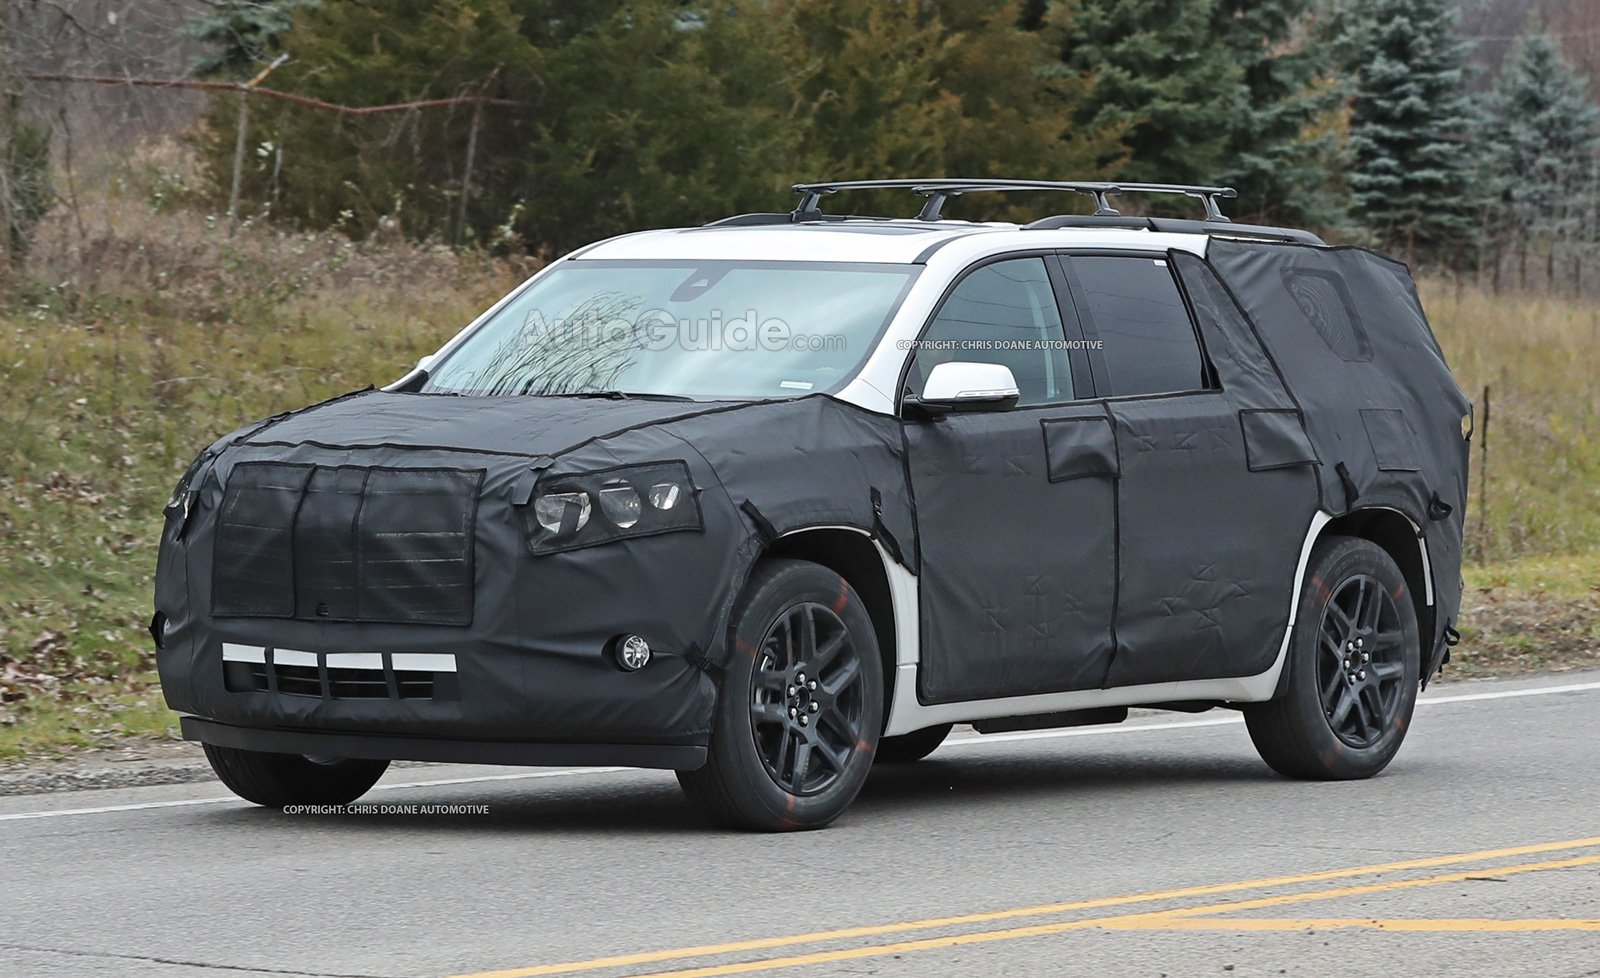 chevrolet-traverse-trailblazer-spy-photos-01